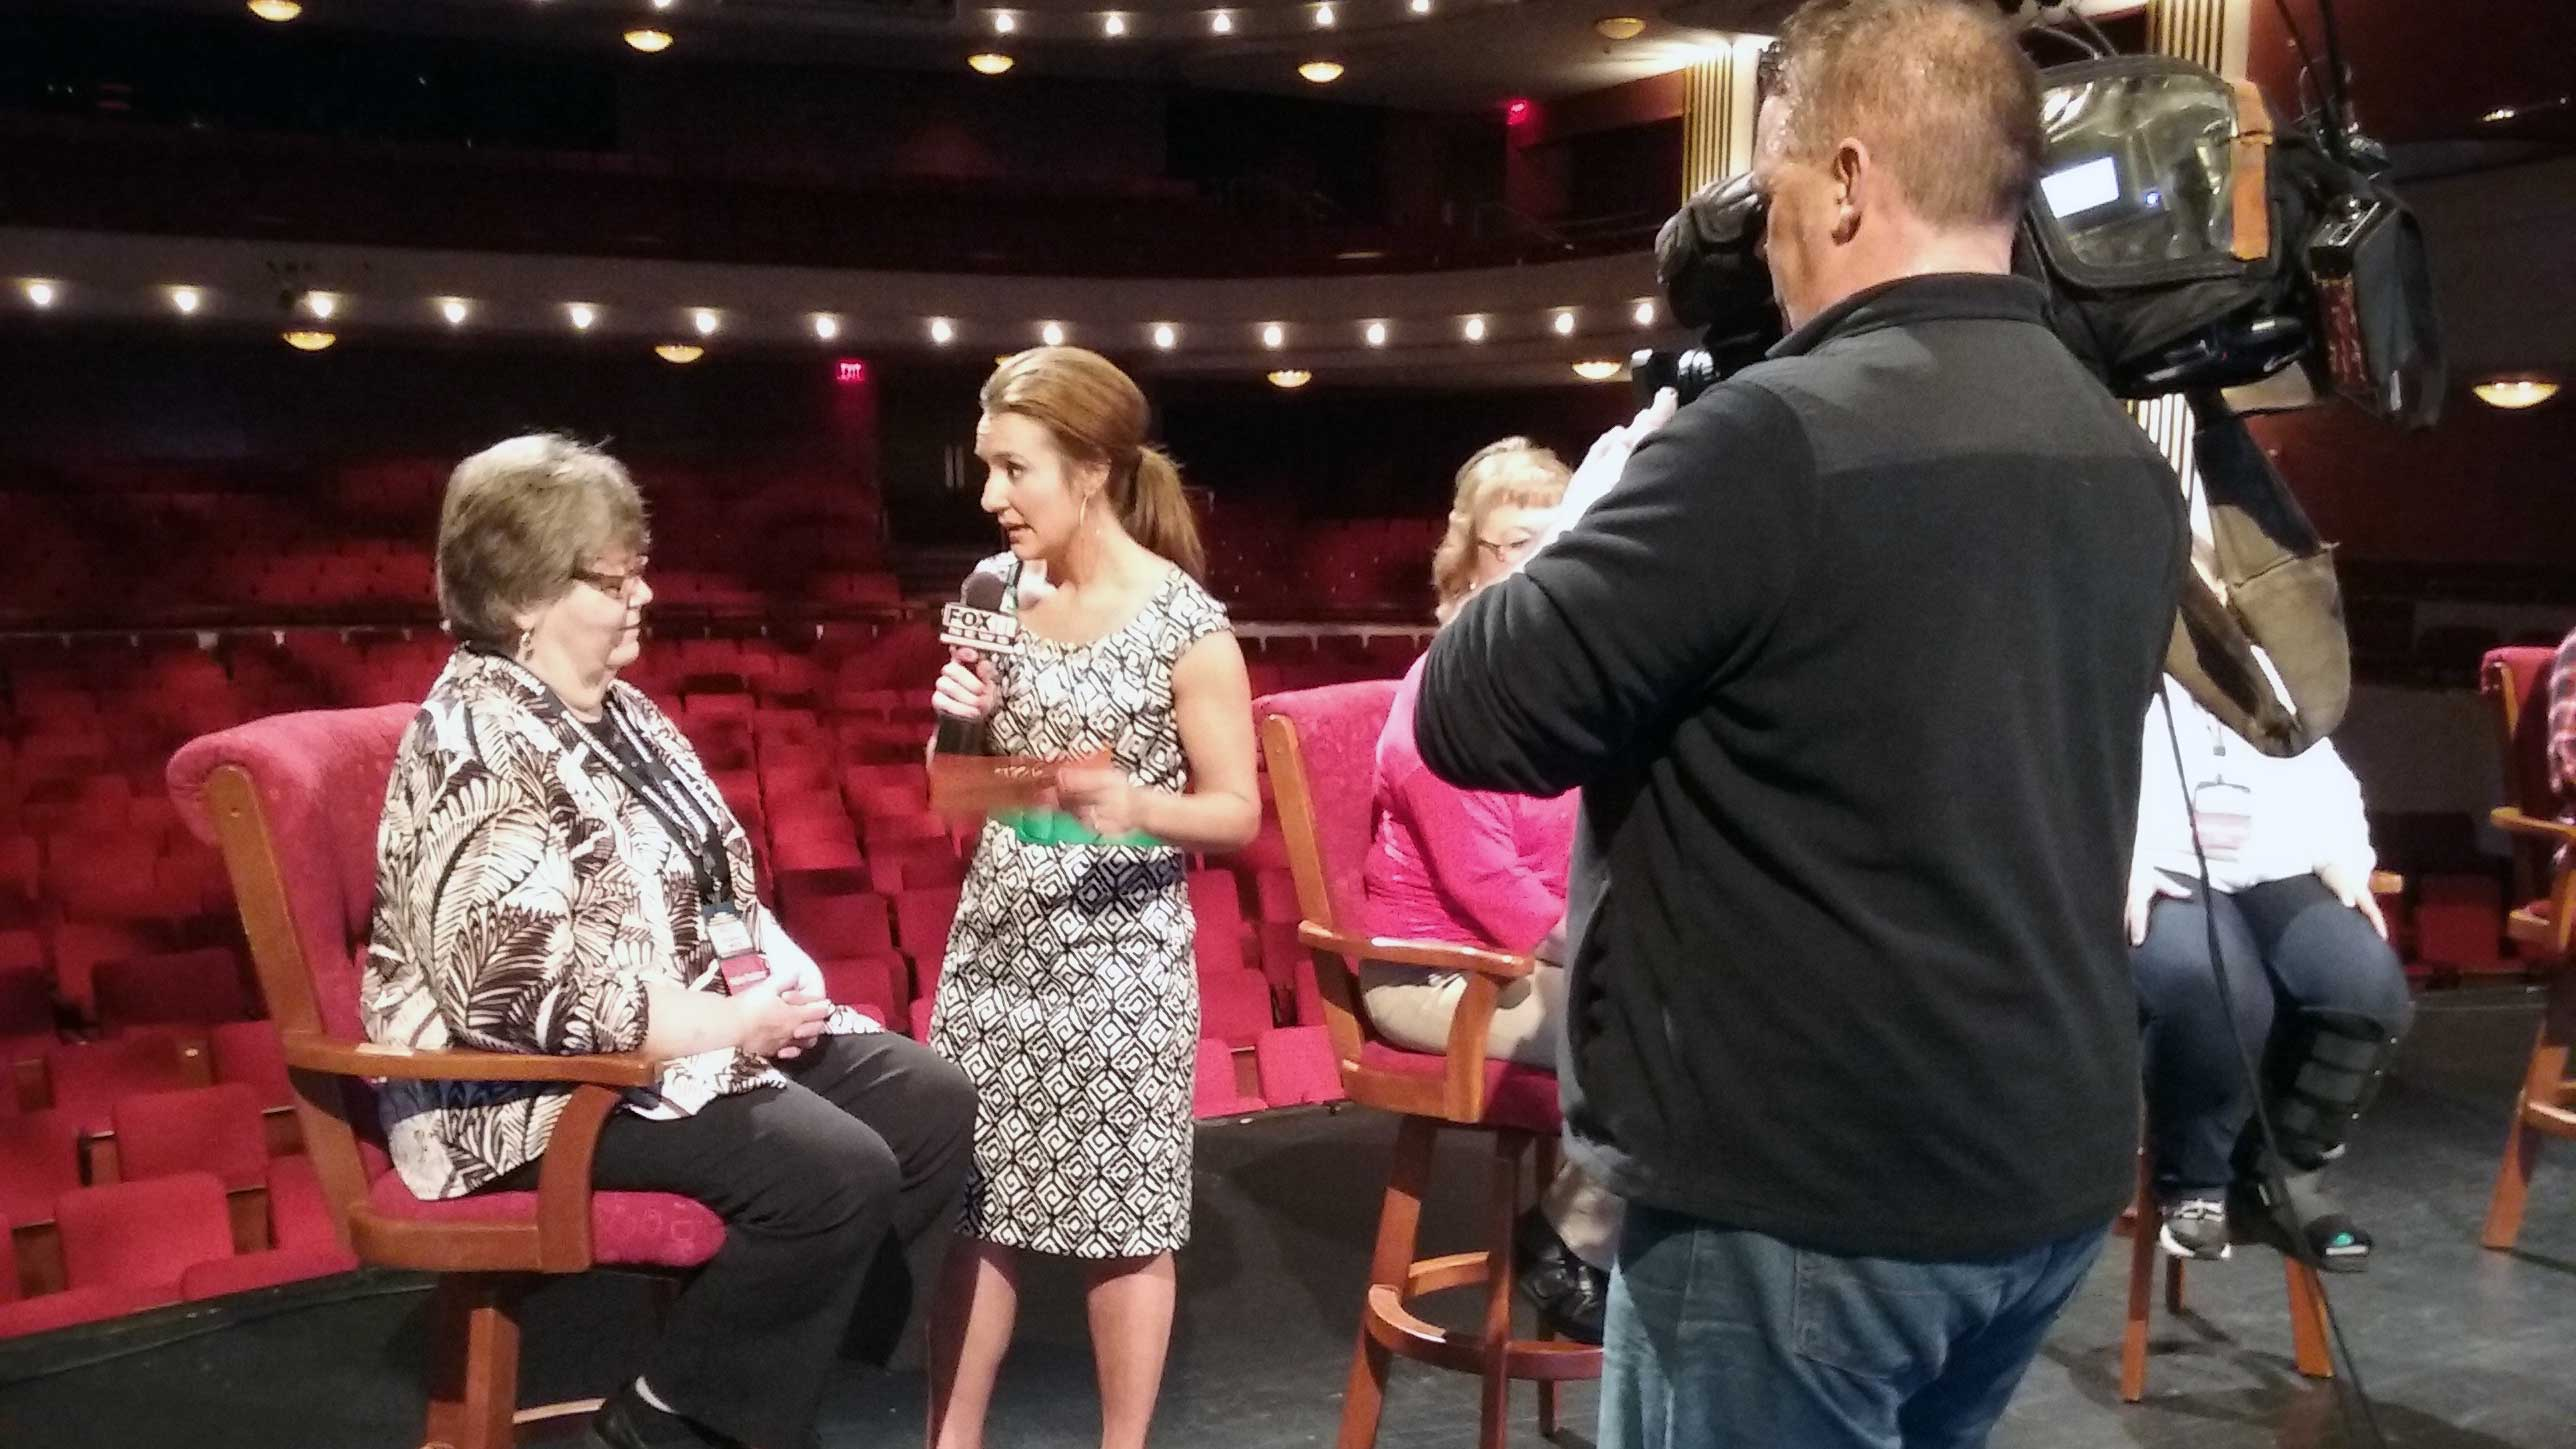 FOX 11's Emily Deem interviews Good Day Wisconsin Broadway Nights finalist Helen Raddant April 13, 2017, at the Fox Cities Performing Arts Center in Appleton. (WLUK/Kimberly Krejcarek)